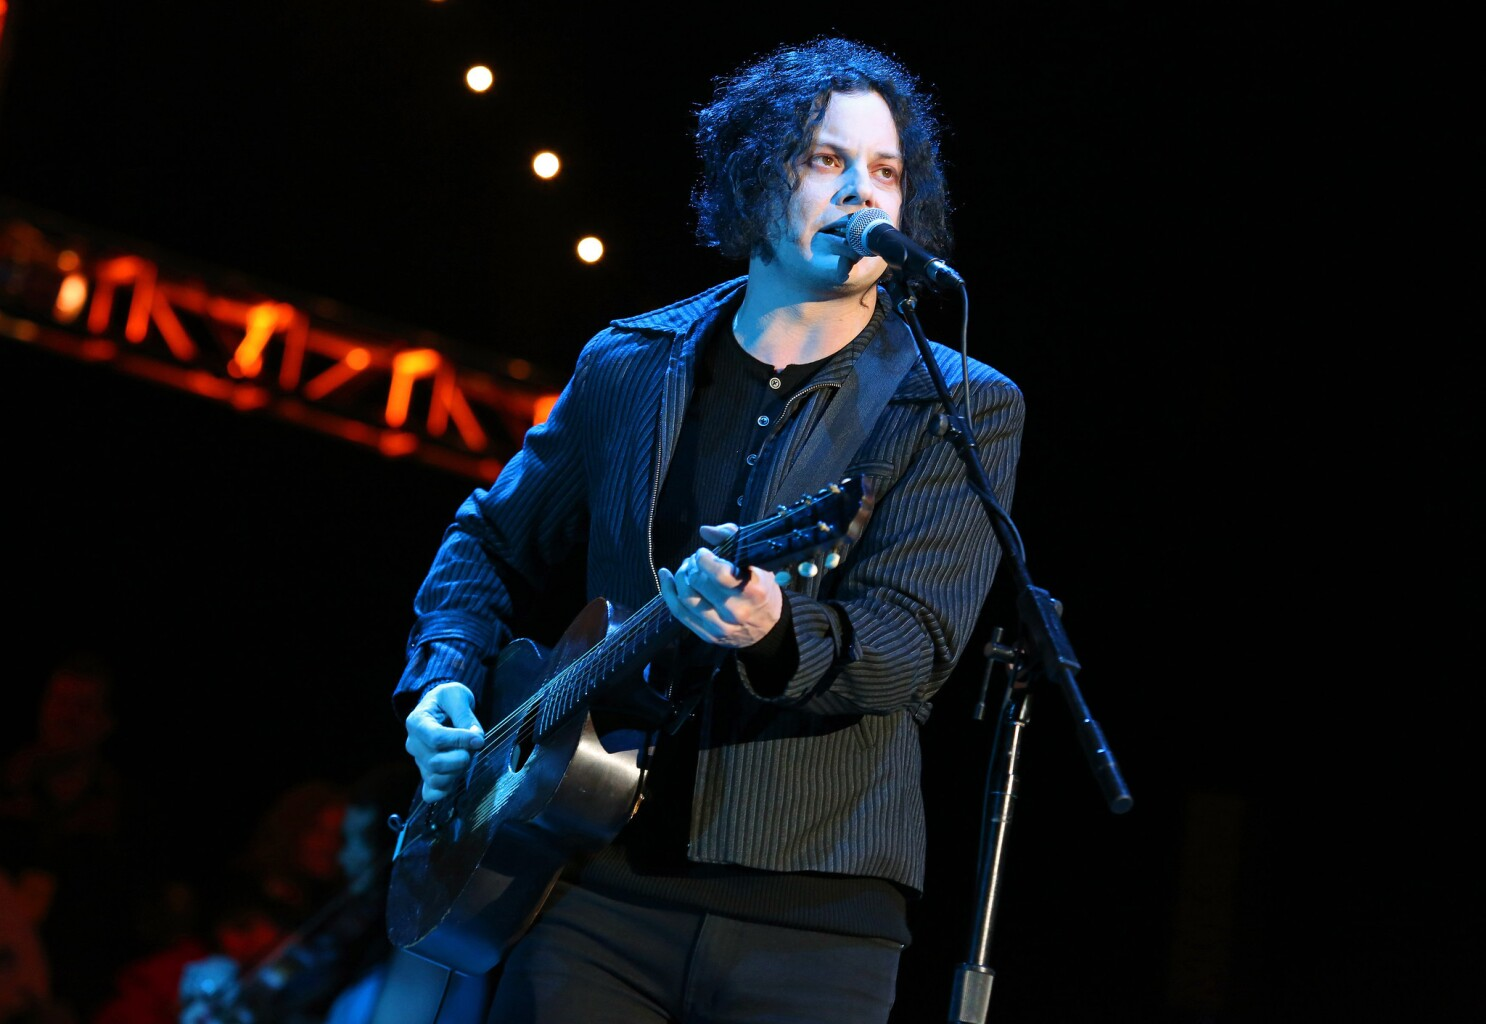 Jack White To Replace Country Singer Morgan Wallen On Snl Los Angeles Times